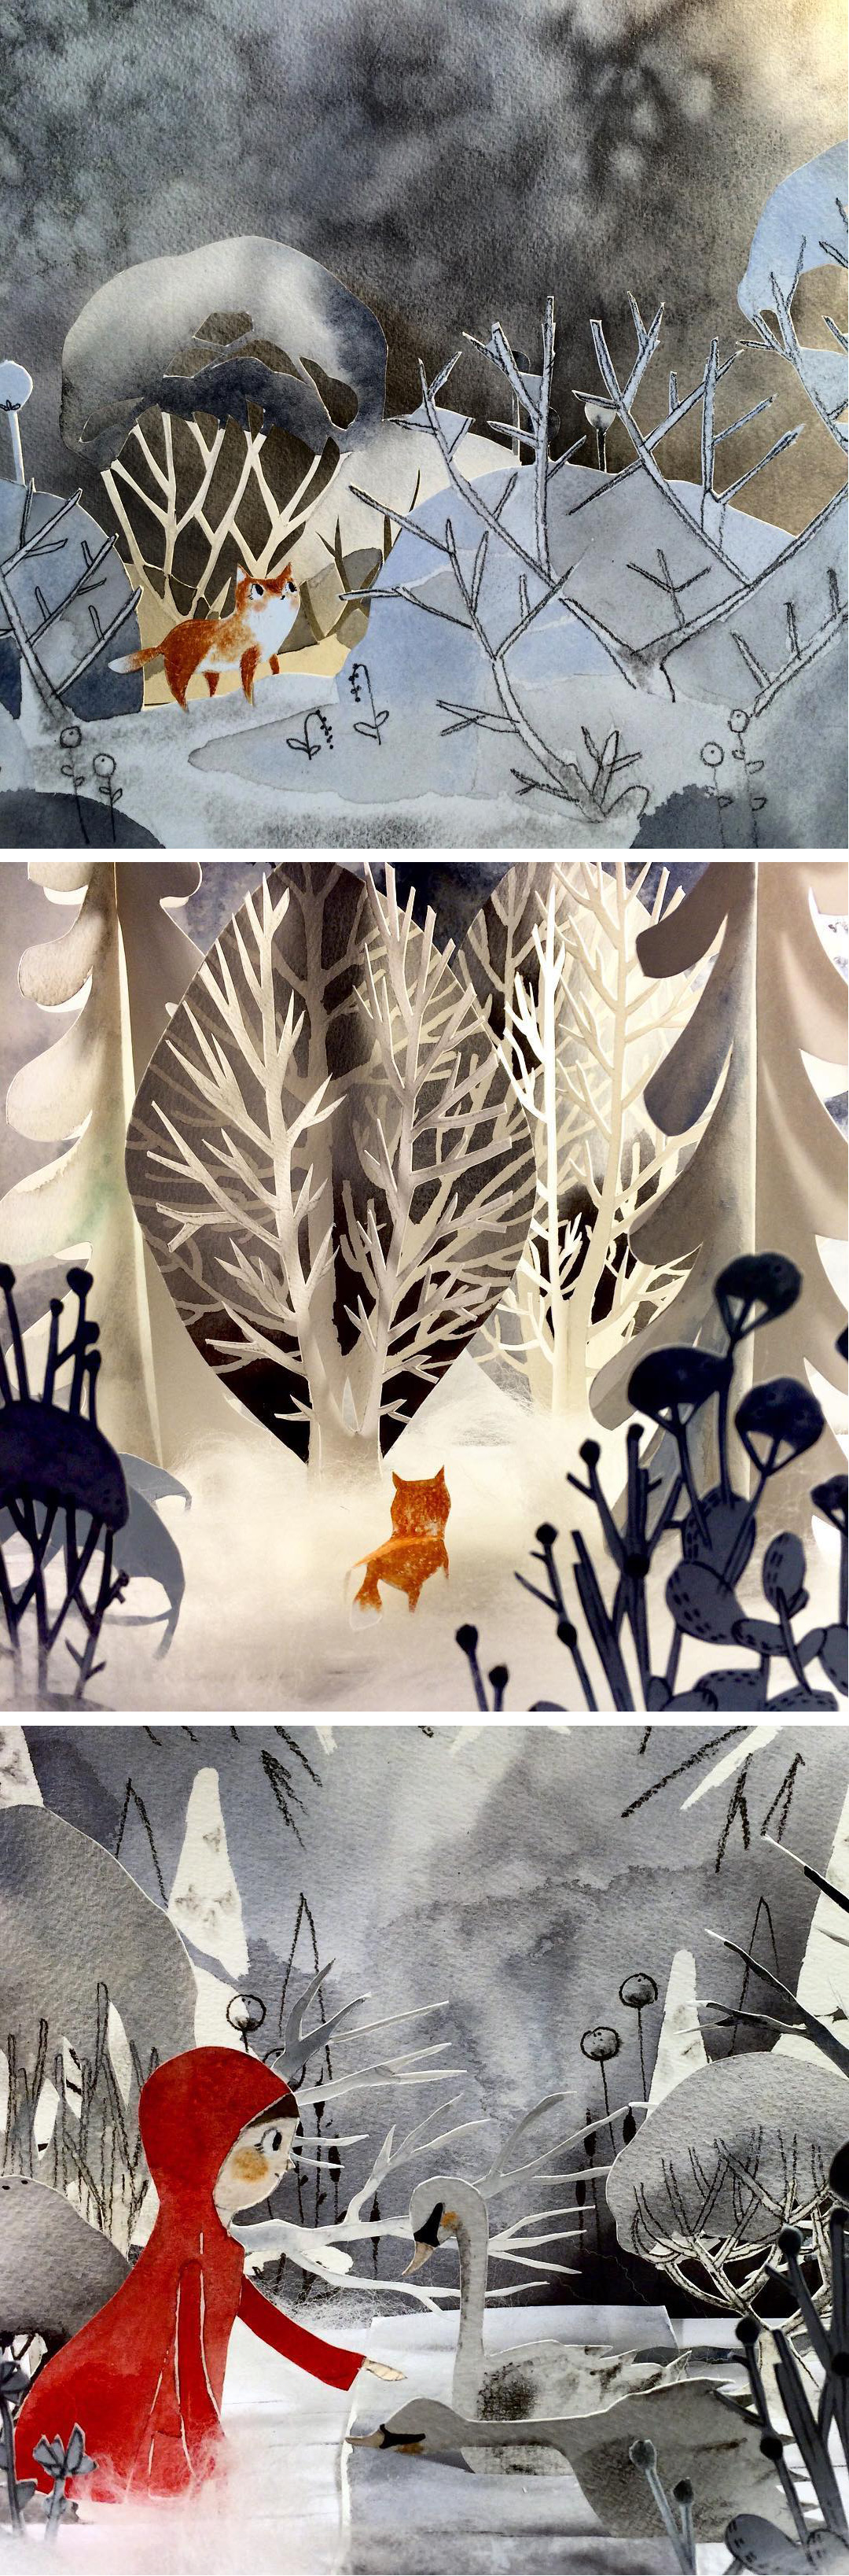 Cut paper diorama by Kelly Pousette